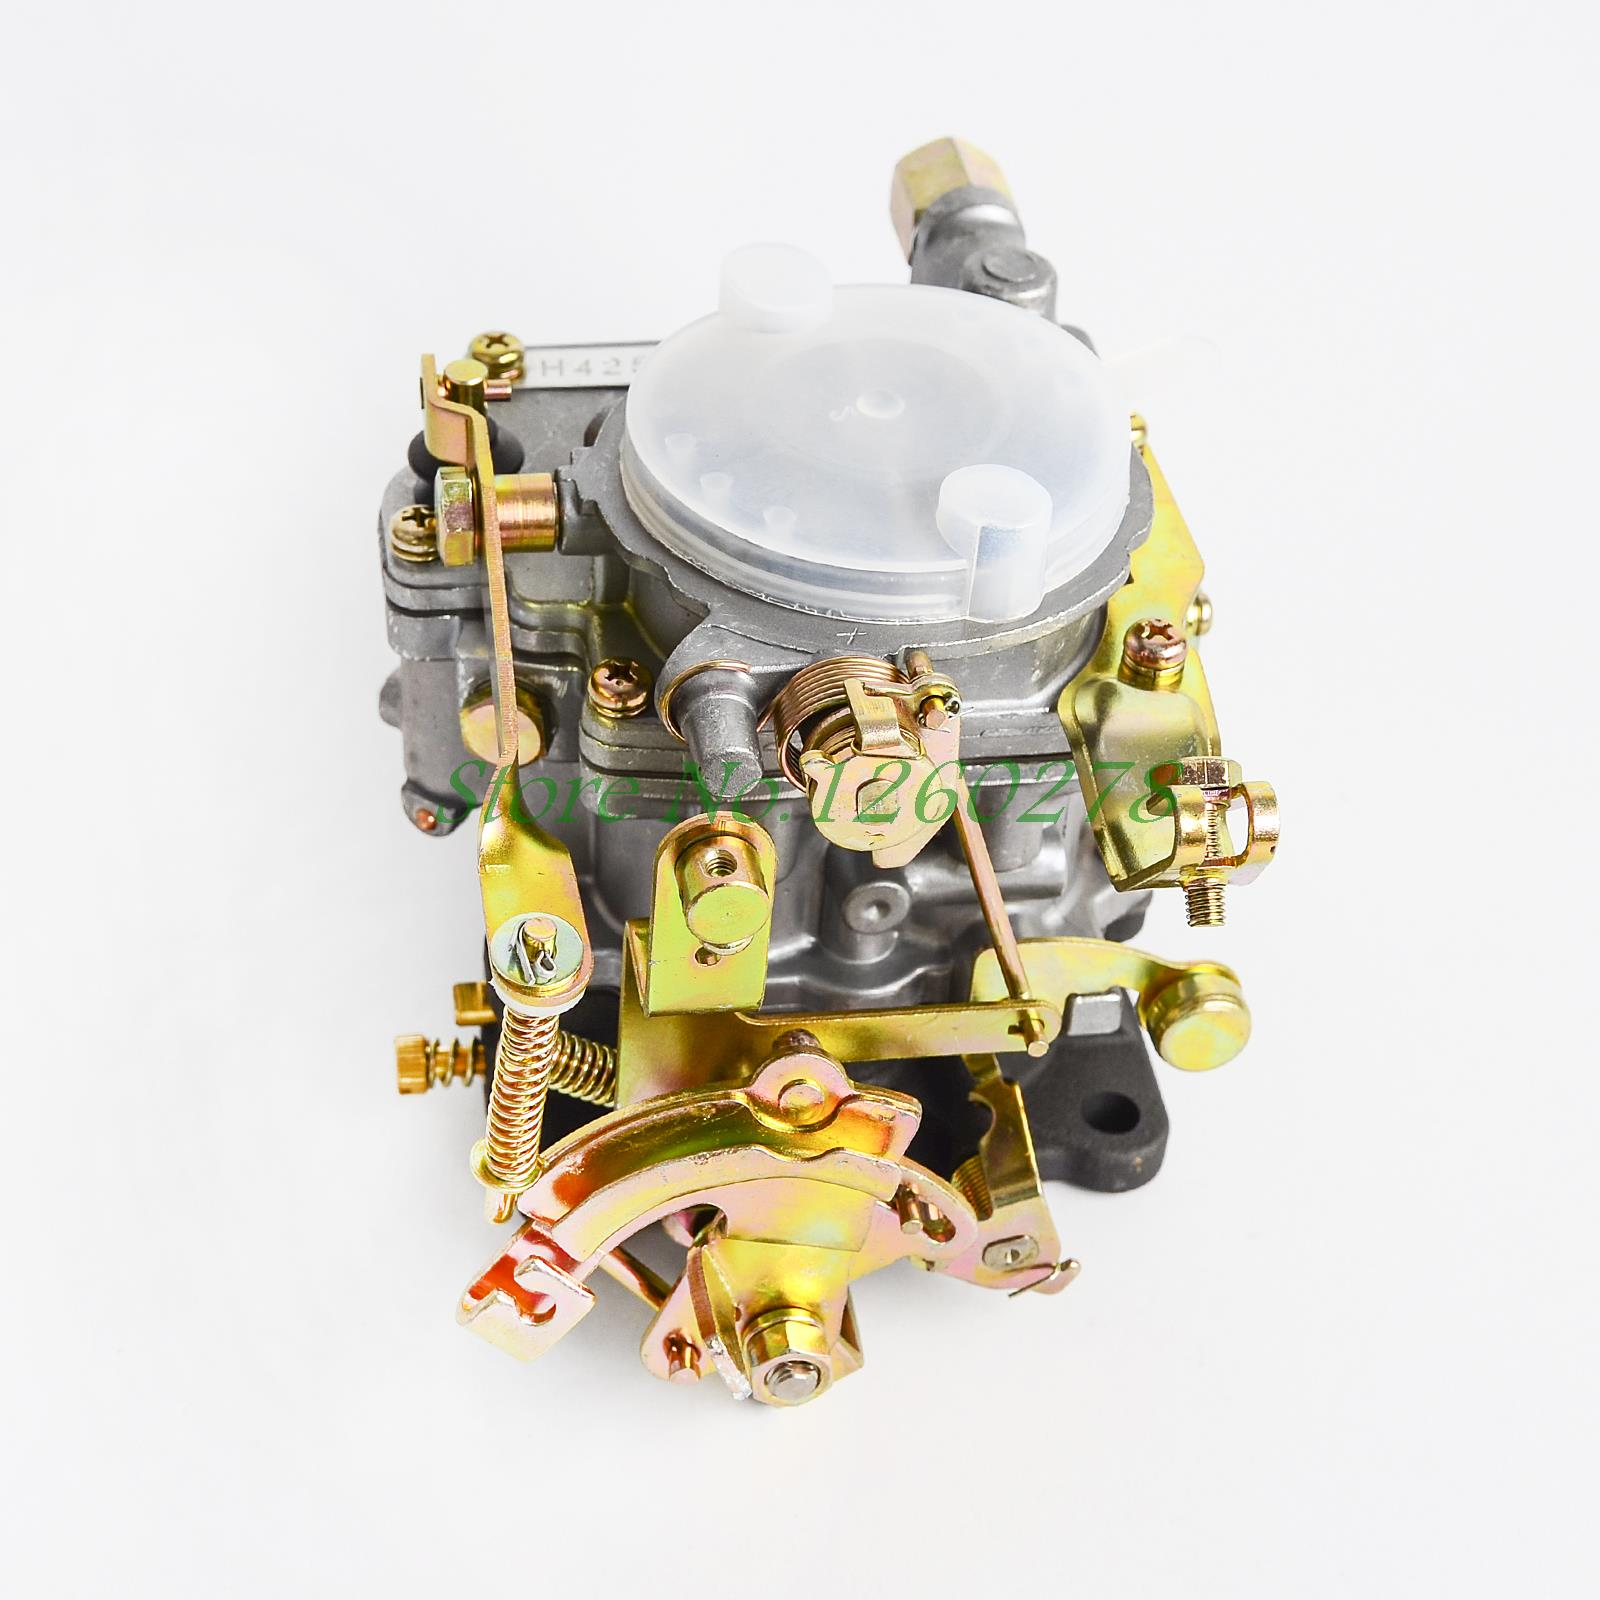 Carby Carburetor for 21100 24045 TOYOTA 3K COROLLA TRUENO 1974 1981 TOYOTA Starlet 1974 1978